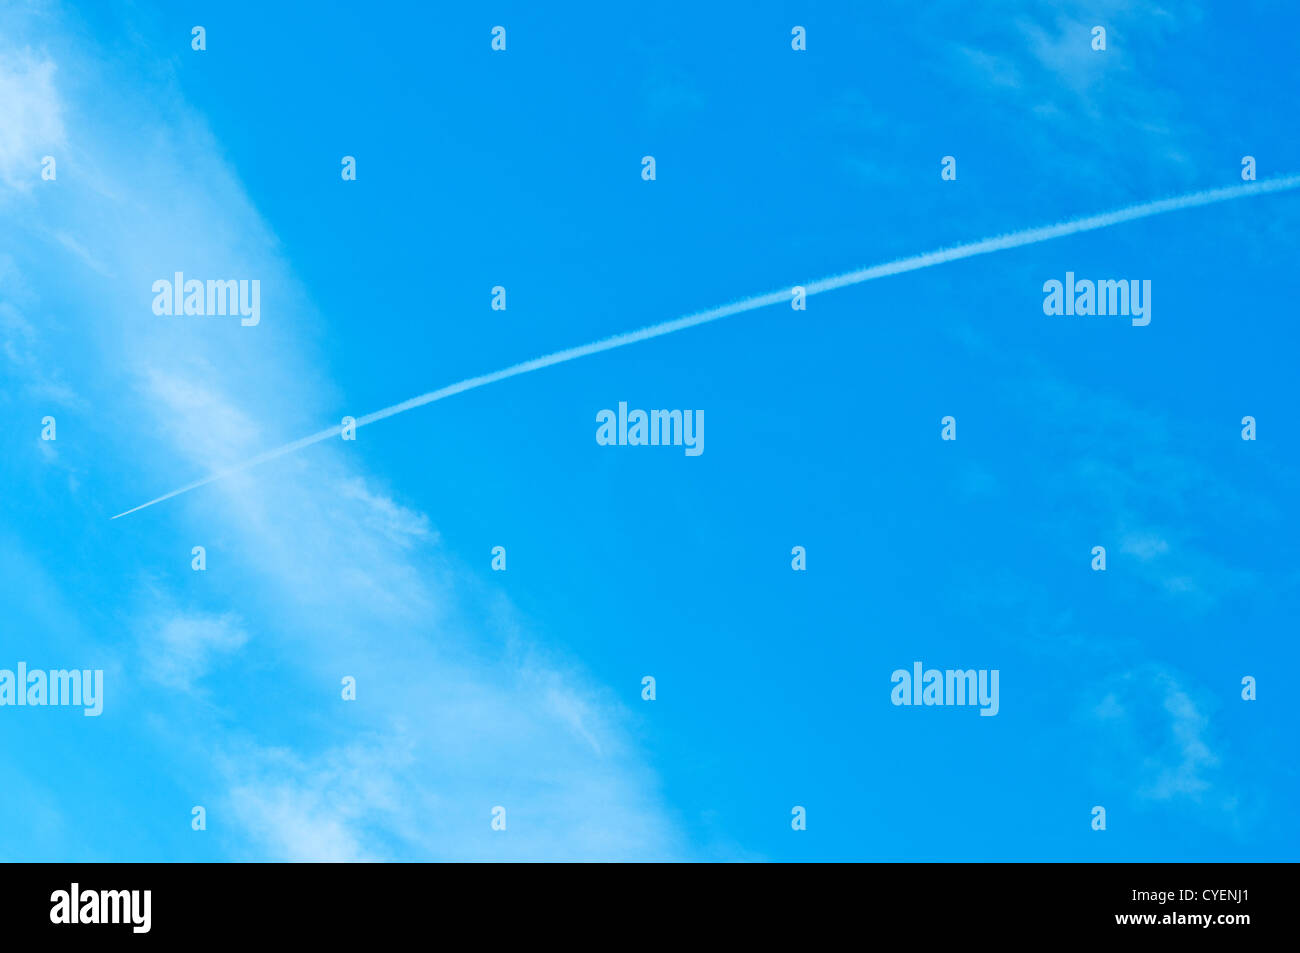 Trace of an airoplane on a cloudy blue sky - Stock Image